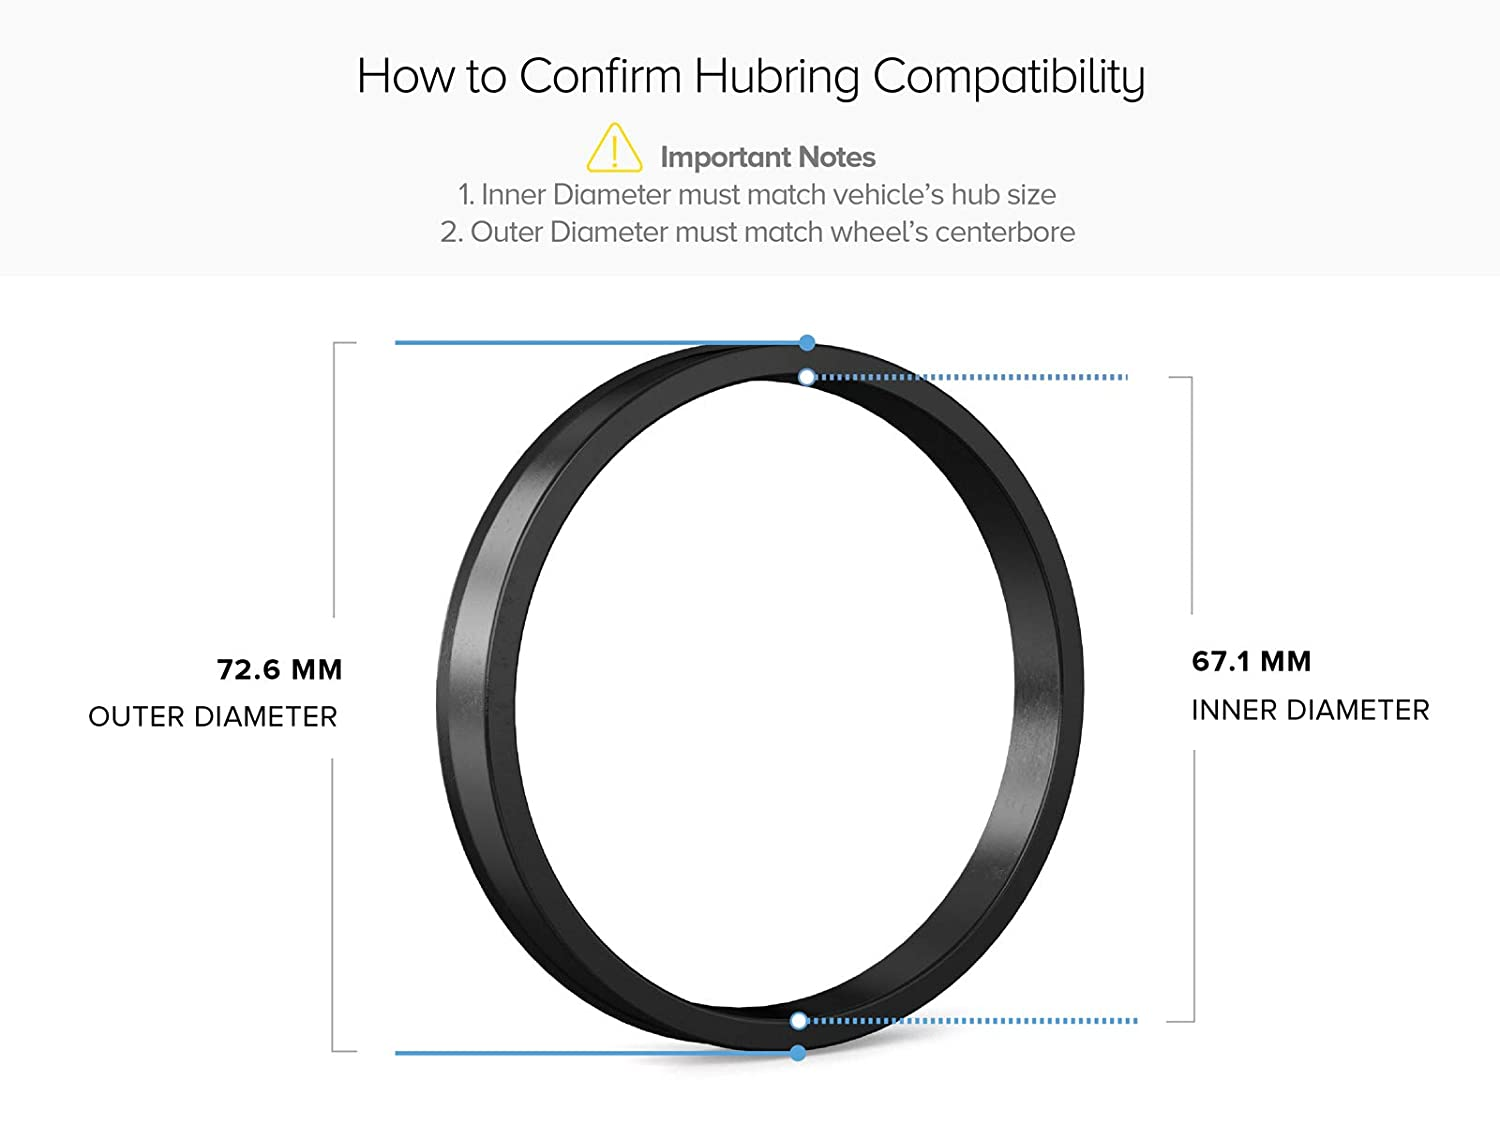 4 Pieces Polycarbonate Hub Centric Rings 78.1mm Wheel Bore to 71.5mm Factory Hub